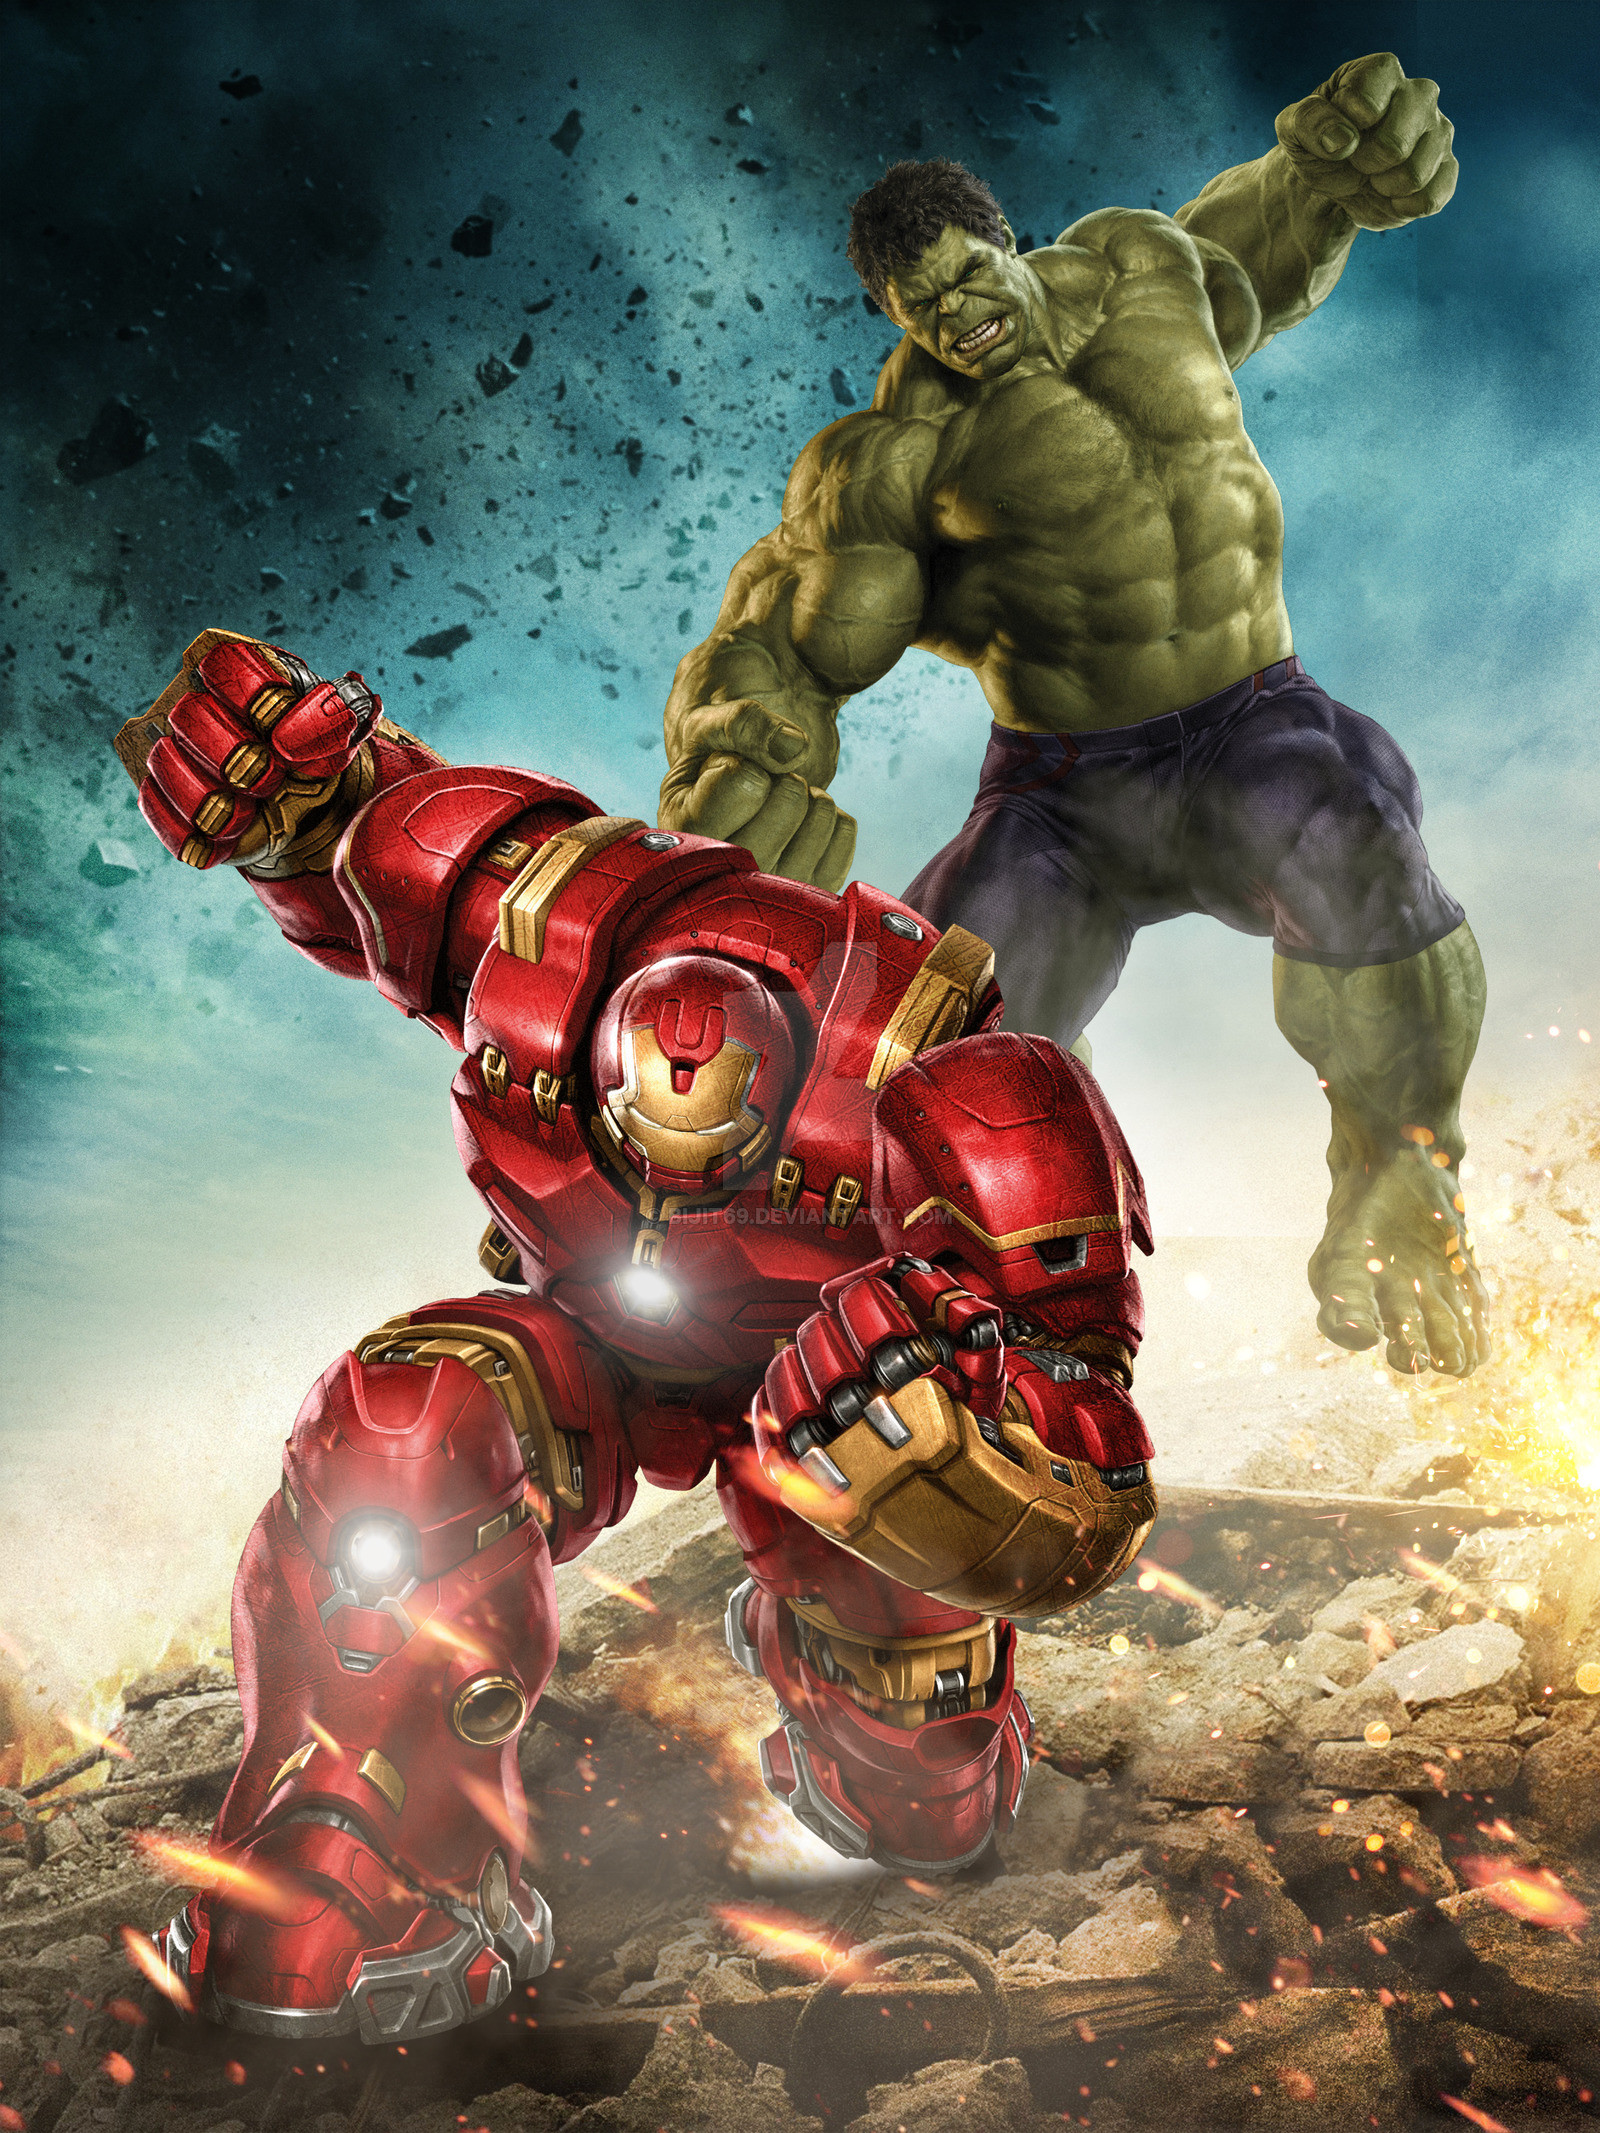 Res: 1600x2133, hulk vs hulkbuster by bijit69 watch fan art wallpaper movies tv 2015